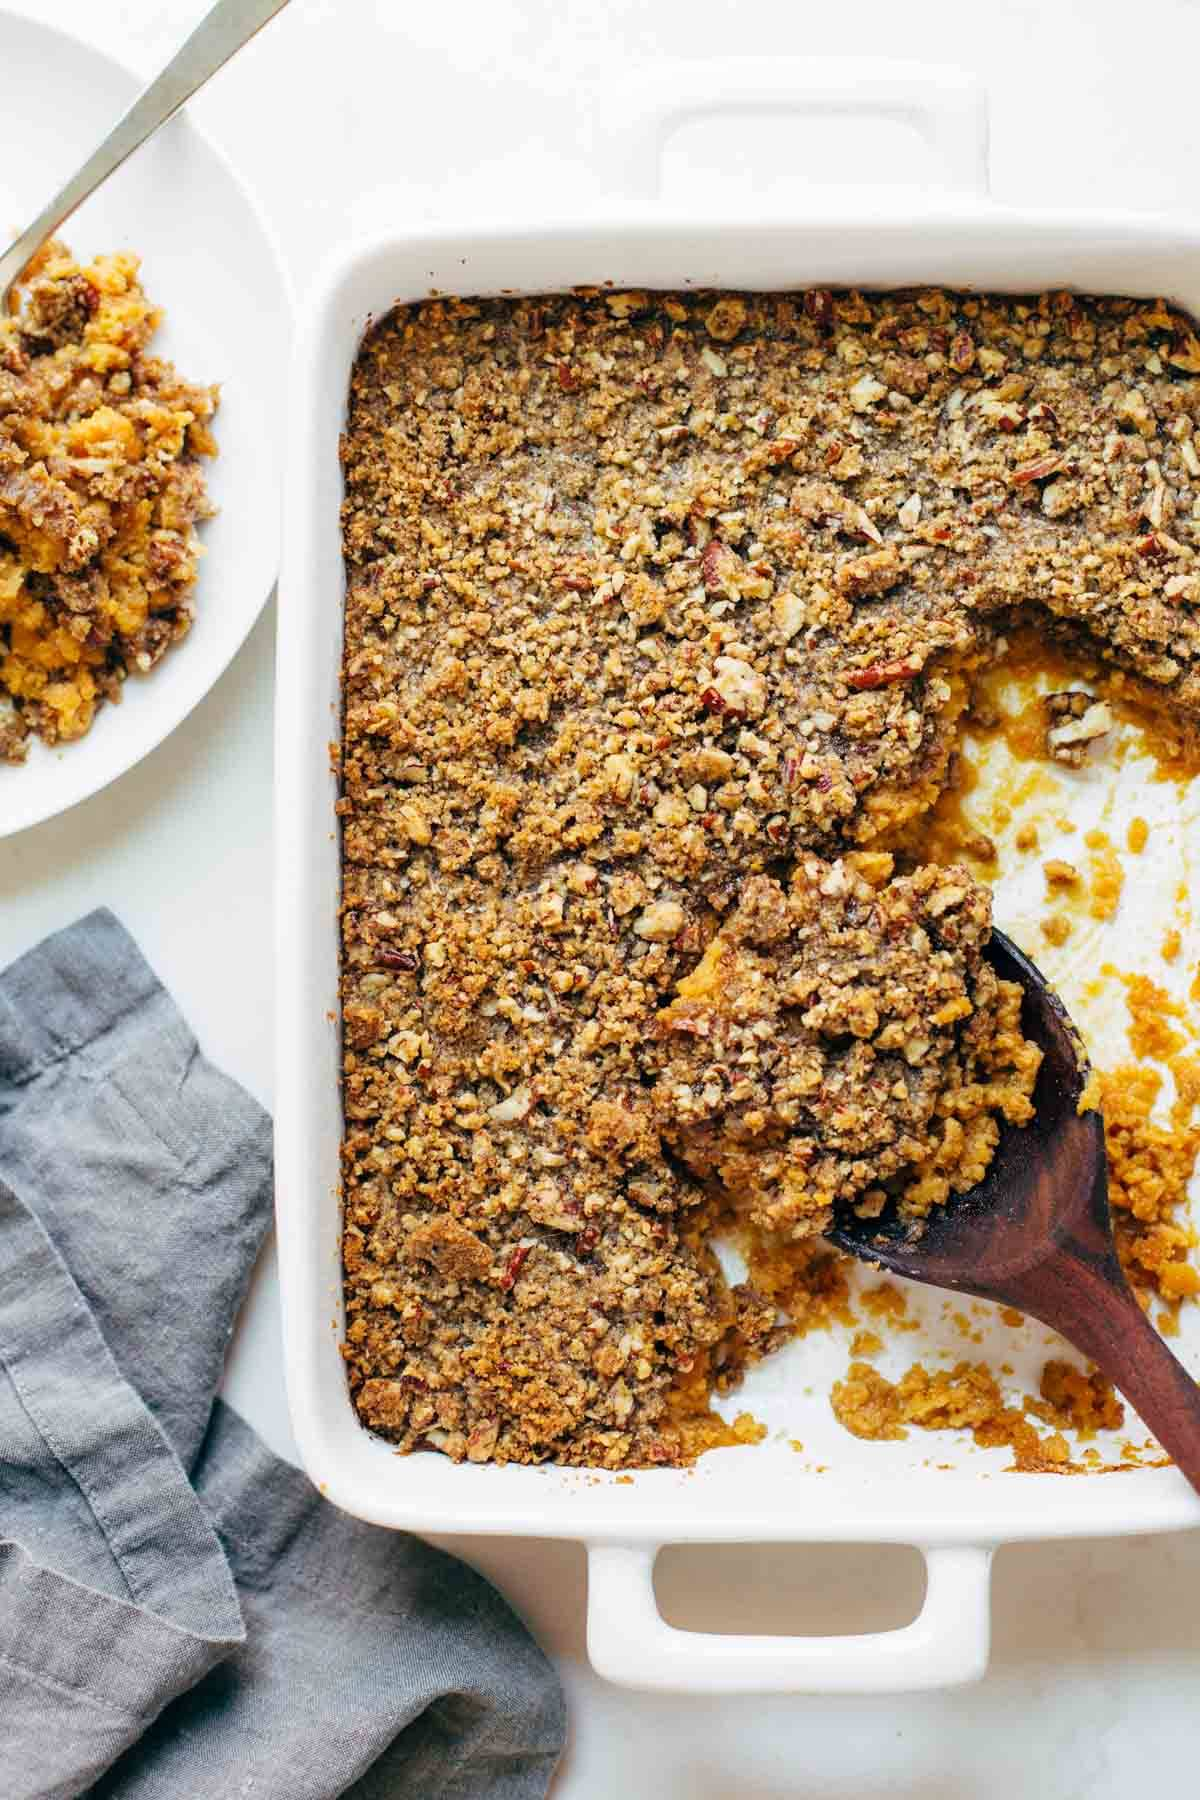 Sweet Potato Casserole with a crunchy brown sugar topping with a wooden spoon